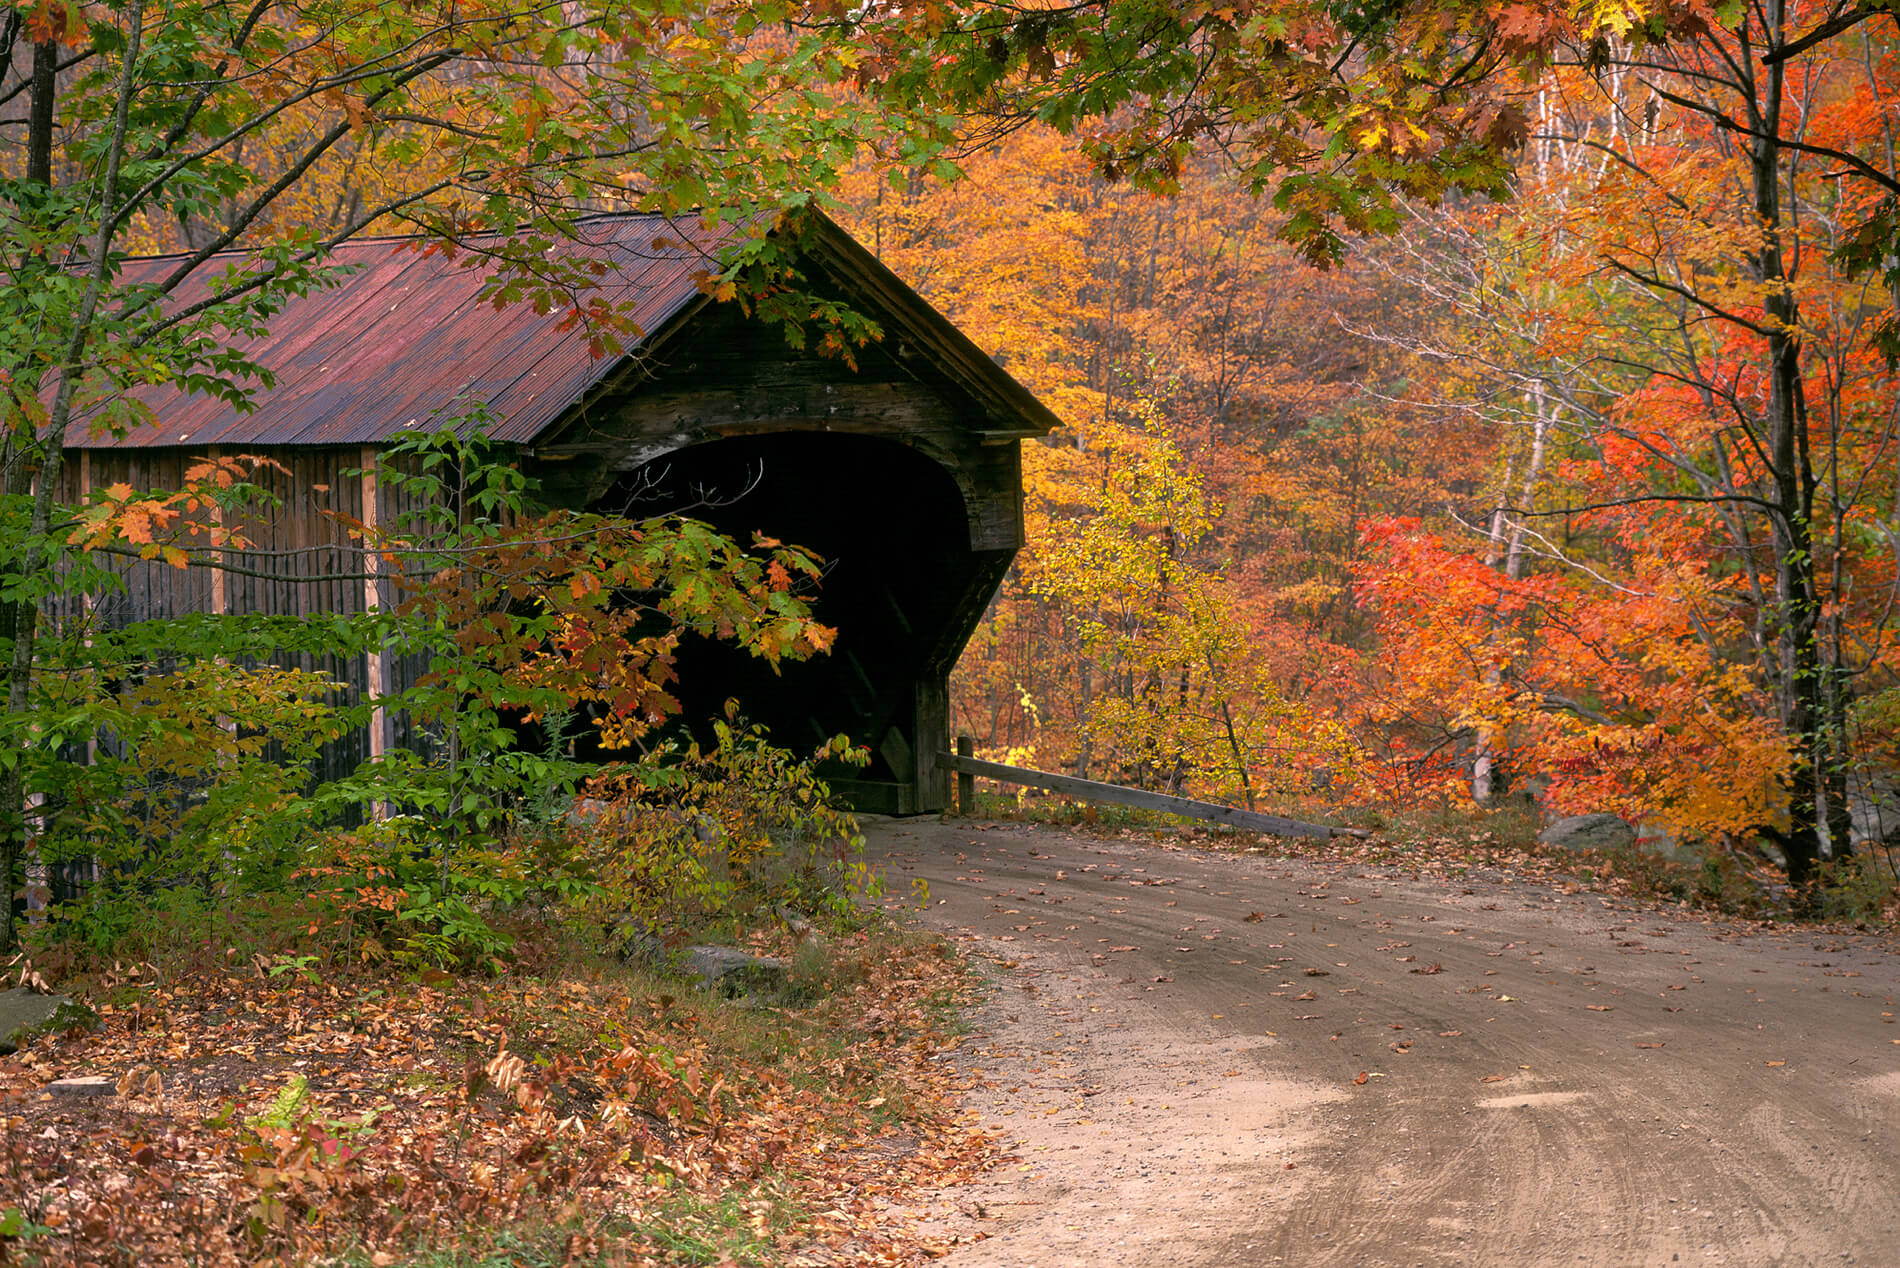 Rustic covered bridge along a dirt road in autumn with orange, green, and yellow leaves.